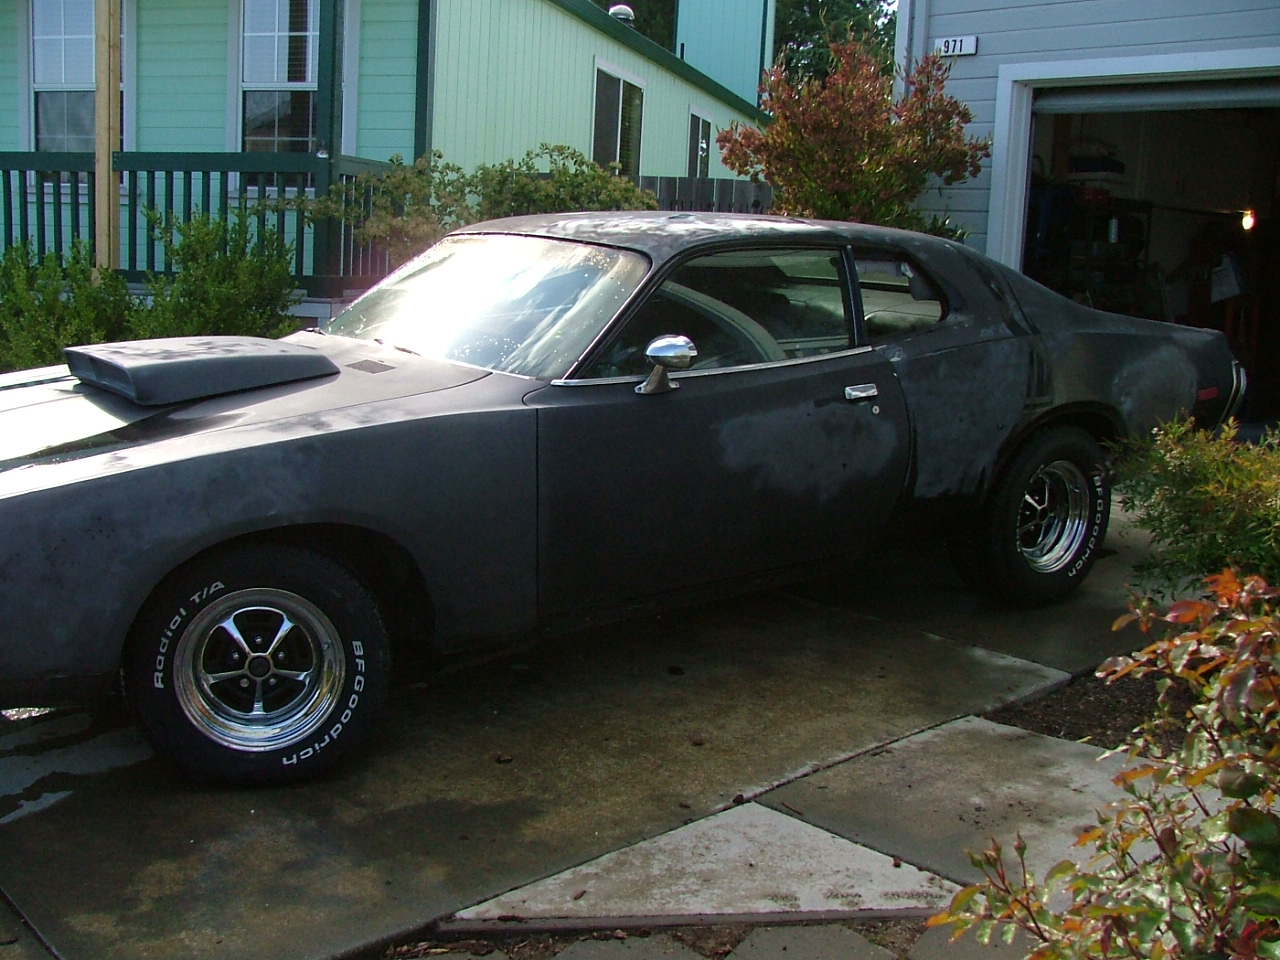 hight resolution of jeramy gates jamie sedgwick the official blog my 73 dodge charger burn notice project